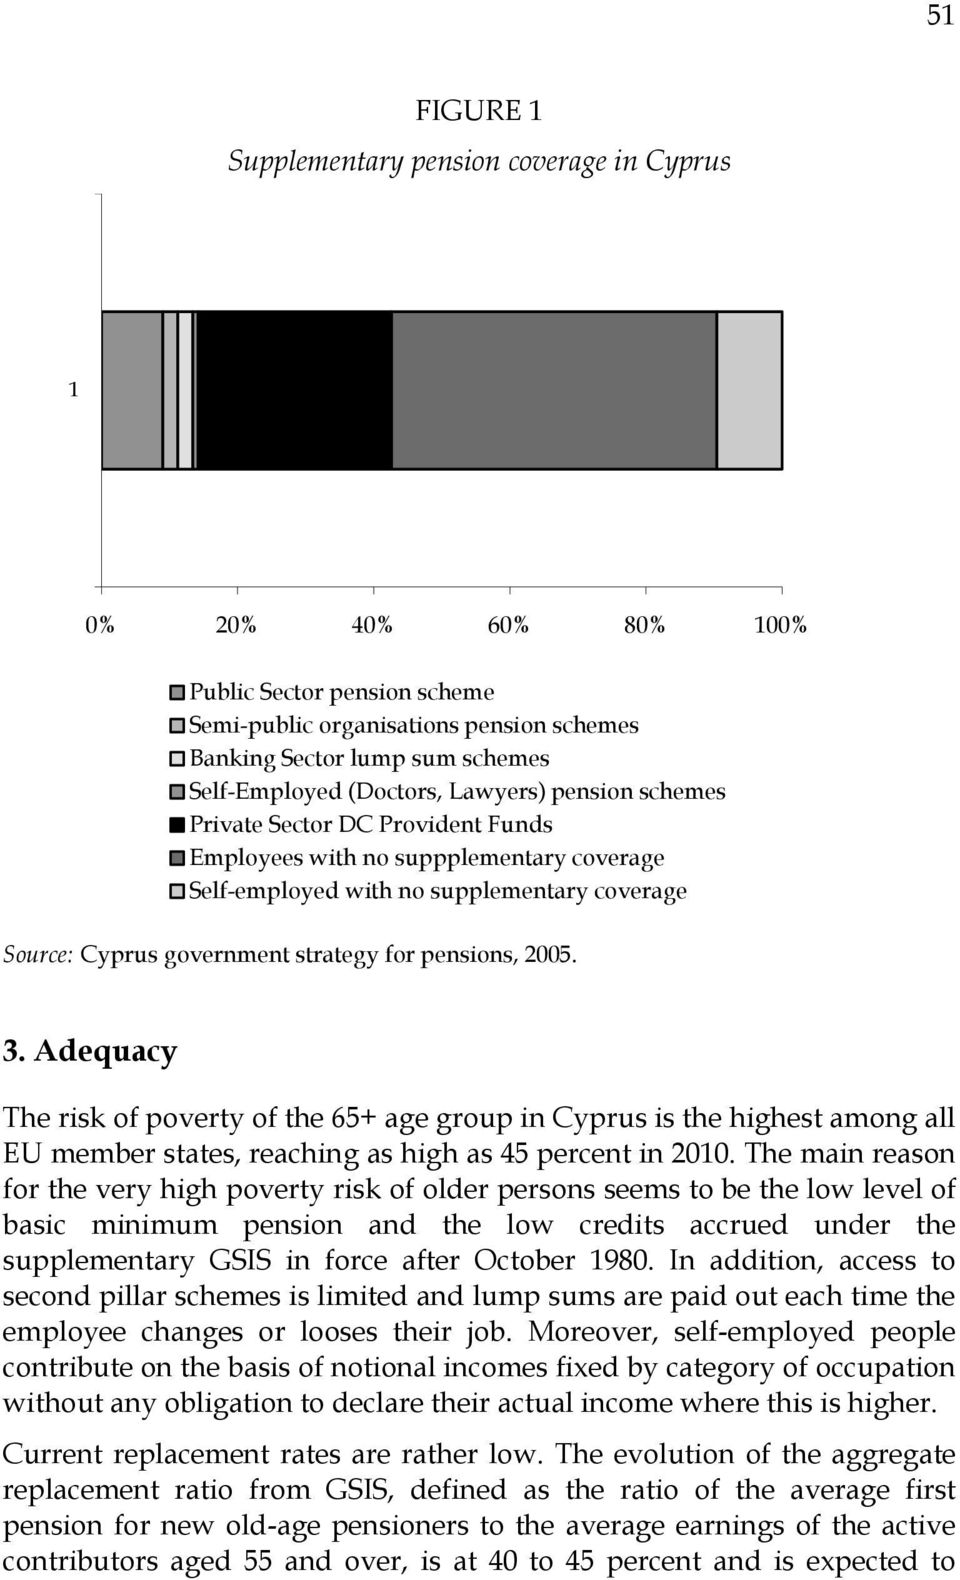 pensions, 2005. 3. Adequacy The risk of poverty of the 65+ age group in Cyprus is the highest among all EU member states, reaching as high as 45 percent in 2010.